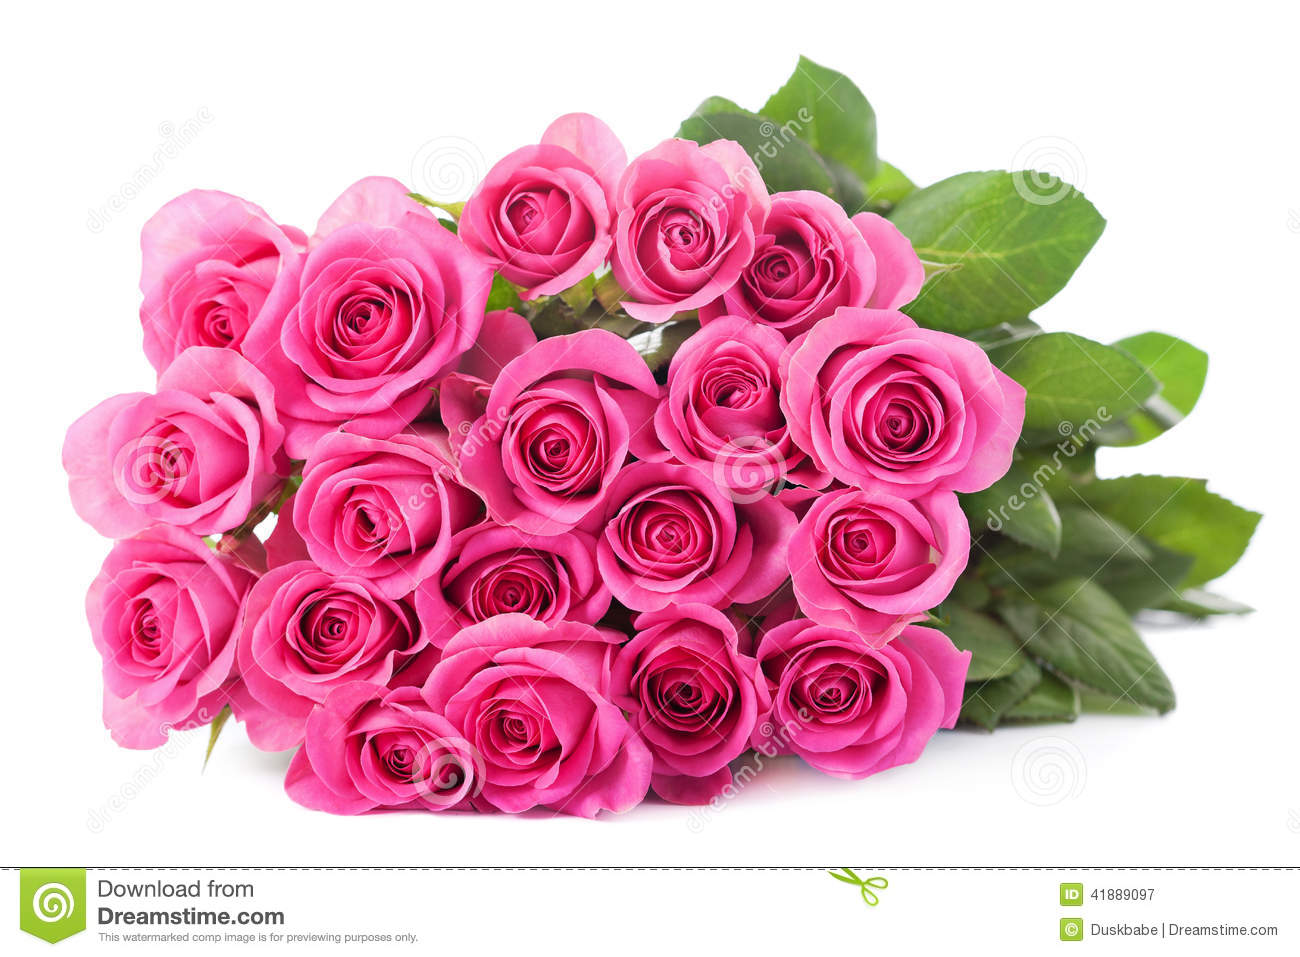 Beau bouquet rose de roses d 39 isolement image stock image for Bouquets de roses